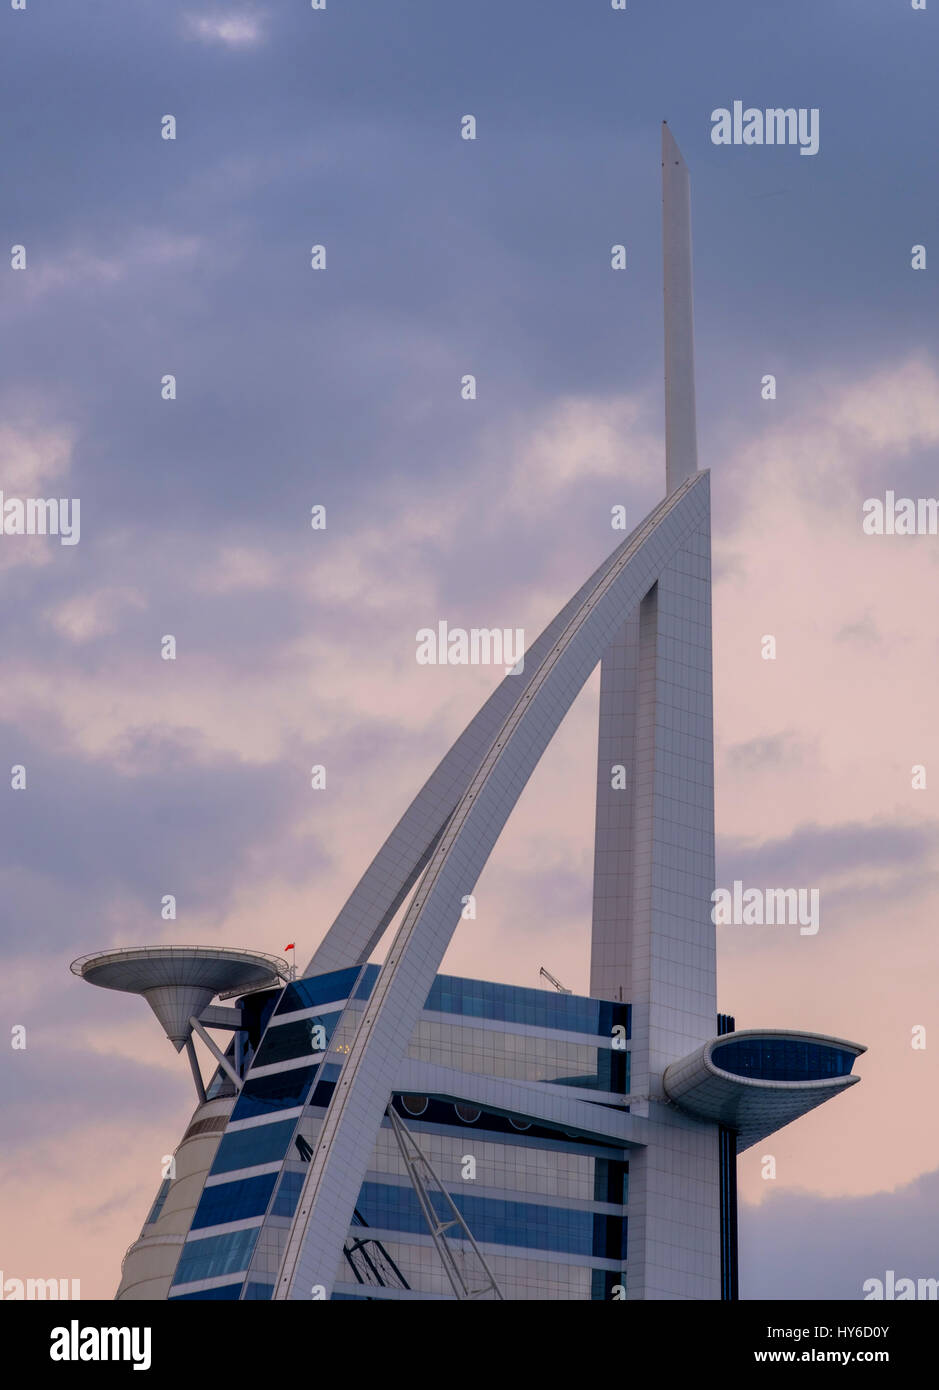 UNITED ARAB EMIRATES, DUBAI - CIRCA JANUARY 2017:  Architectural detail of the Burj Al Arab, the only 7 star hotel - Stock Image